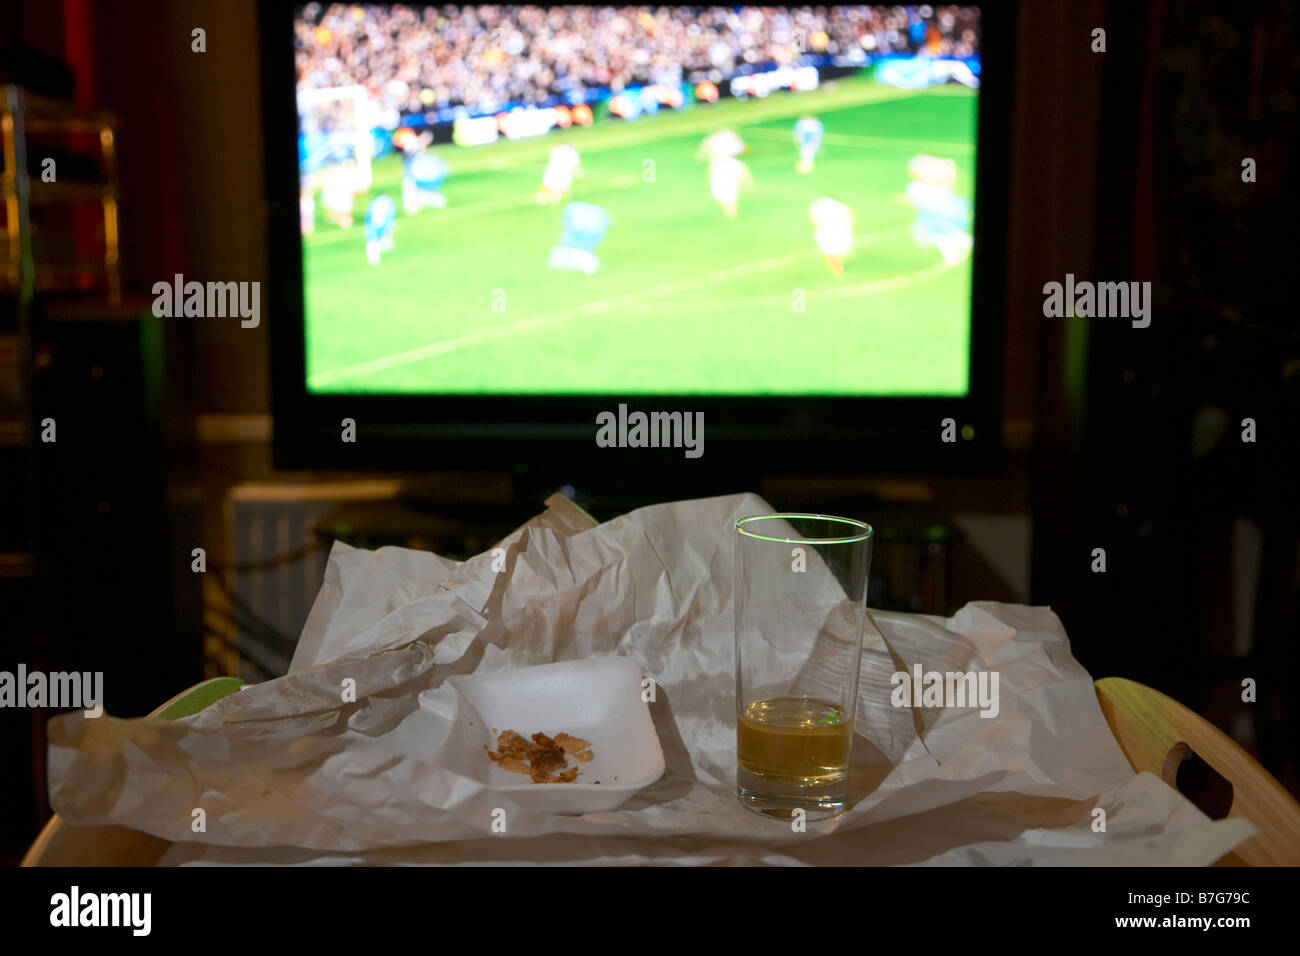 remains of a takeaway meal for one and glass of beer on a tray in front of soccer on the tv in the living room of - Stock Image